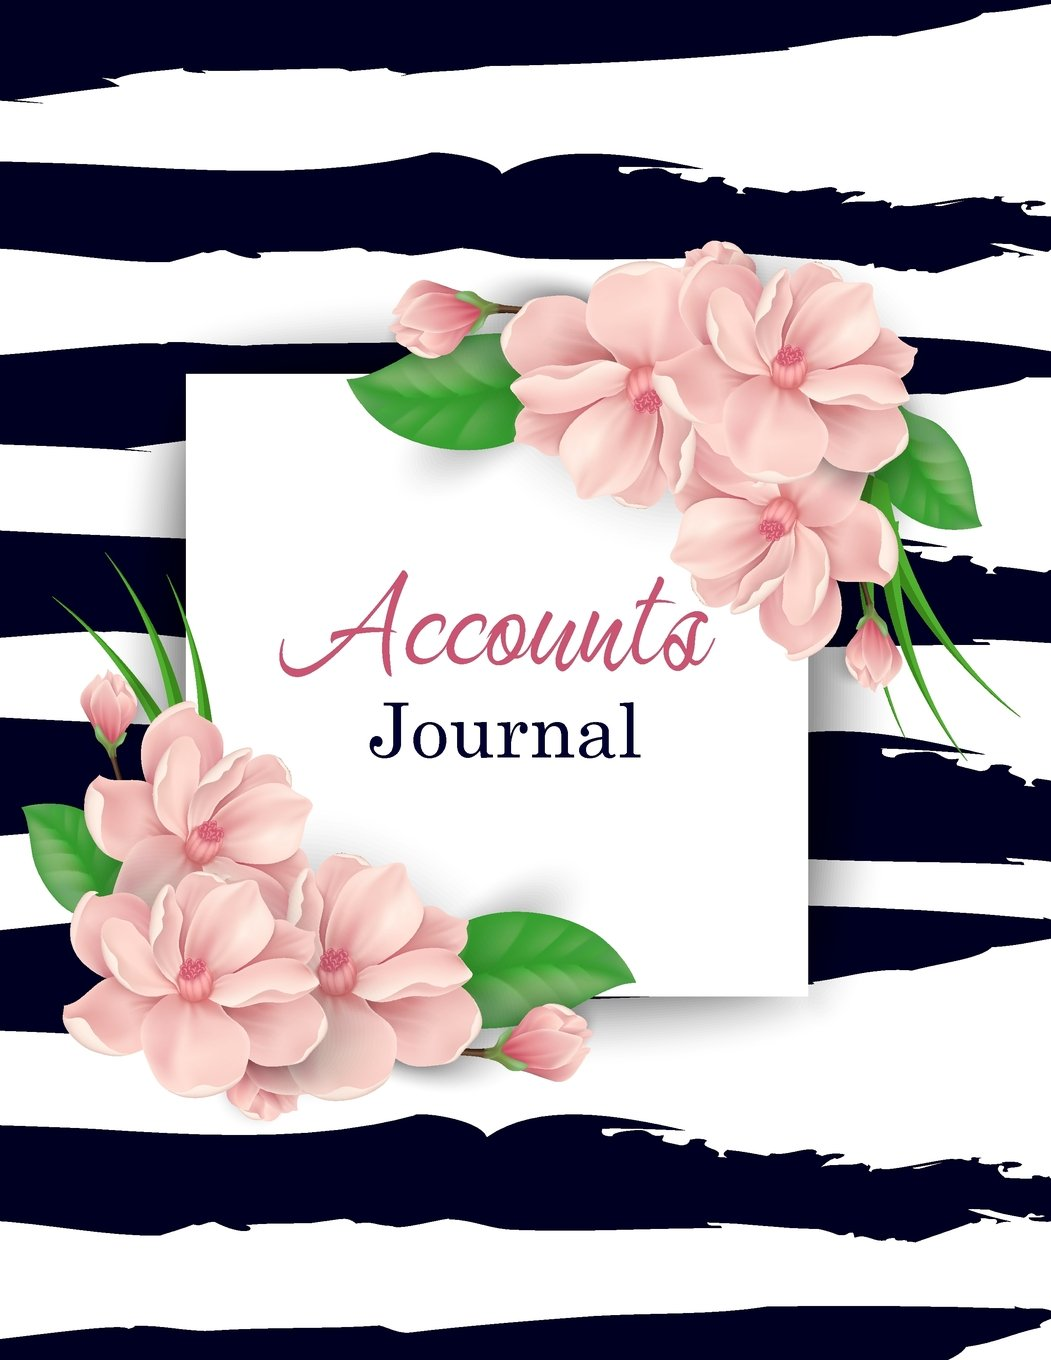 Accounts Journal: Pink Flowers General Journal Entries Accounting Notebok Financial Record Manage And Track Debits and Credits Size 8.5x11 Inches 120 Pages (Bookkeeping) (Volume 5)